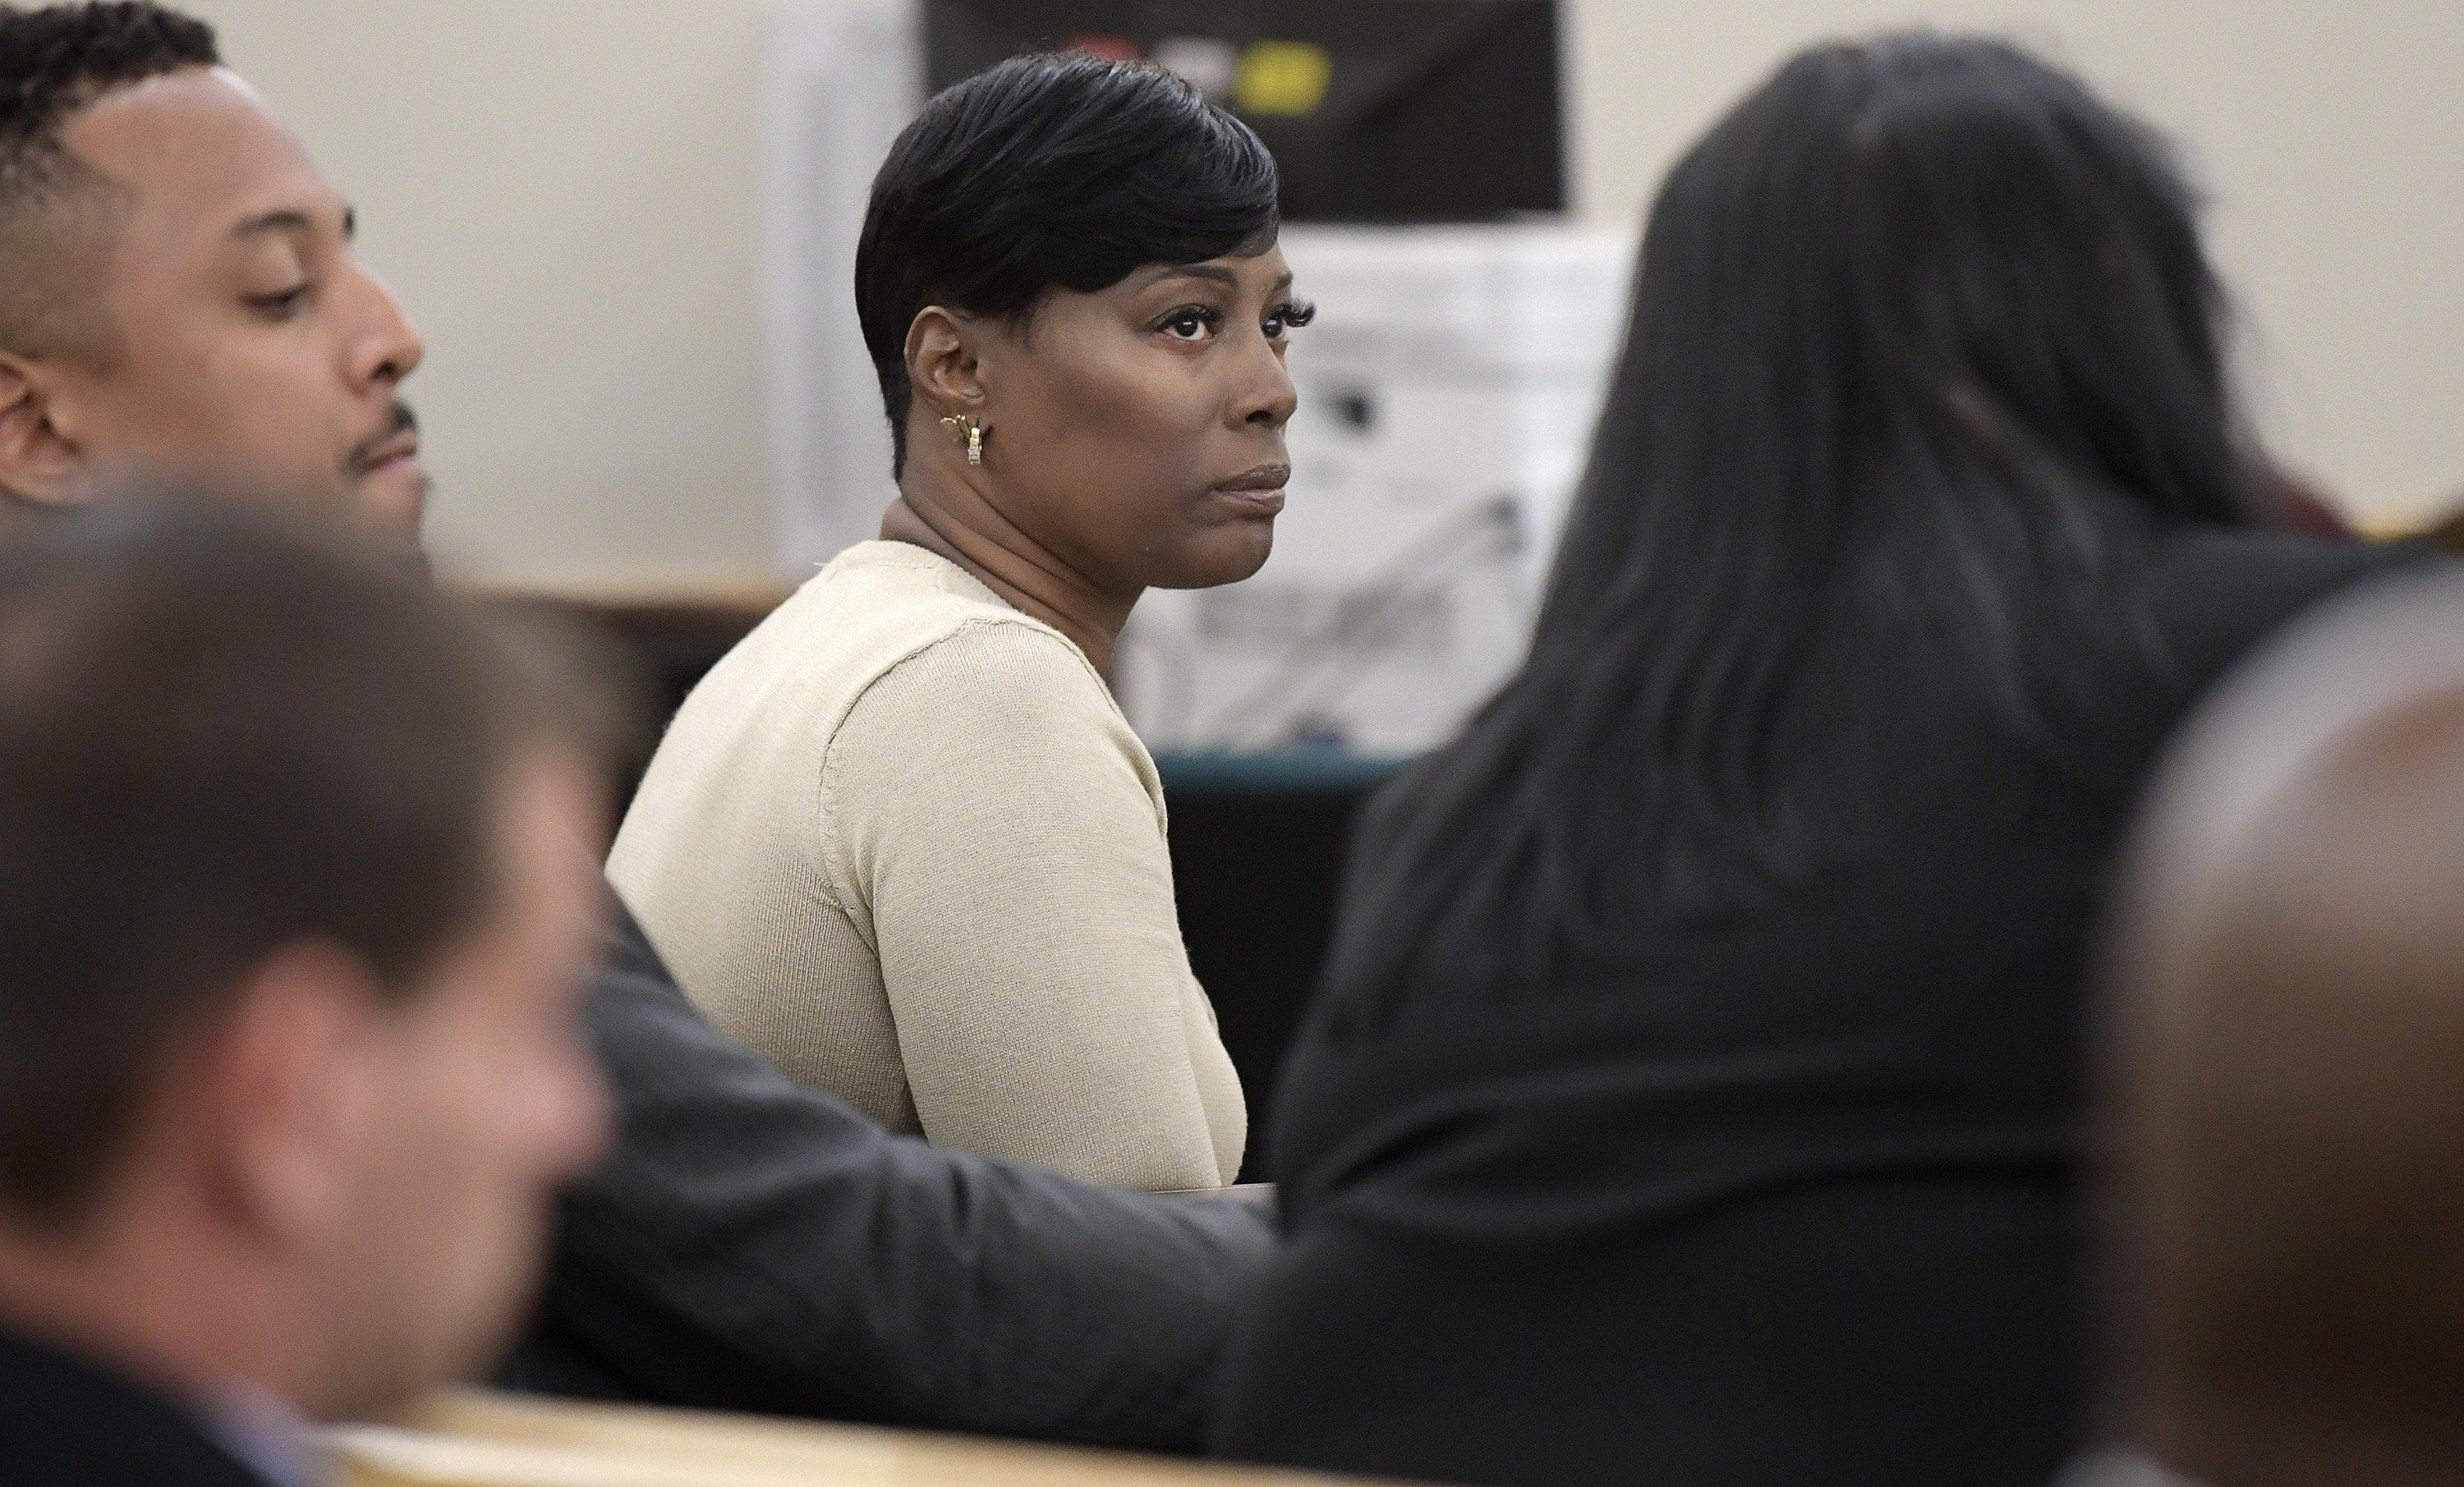 Crystal Mason, middle, convicted for illegal voting and sentenced to five years in prison, sitting at the defense table in Ruben Gonzalez's court at Tim Curry Justice Center in Fort Worth, Texas, on May 25, 2018. (Max Faulkner/Fort Worth Star-Telegram/TNS via Getty Images)